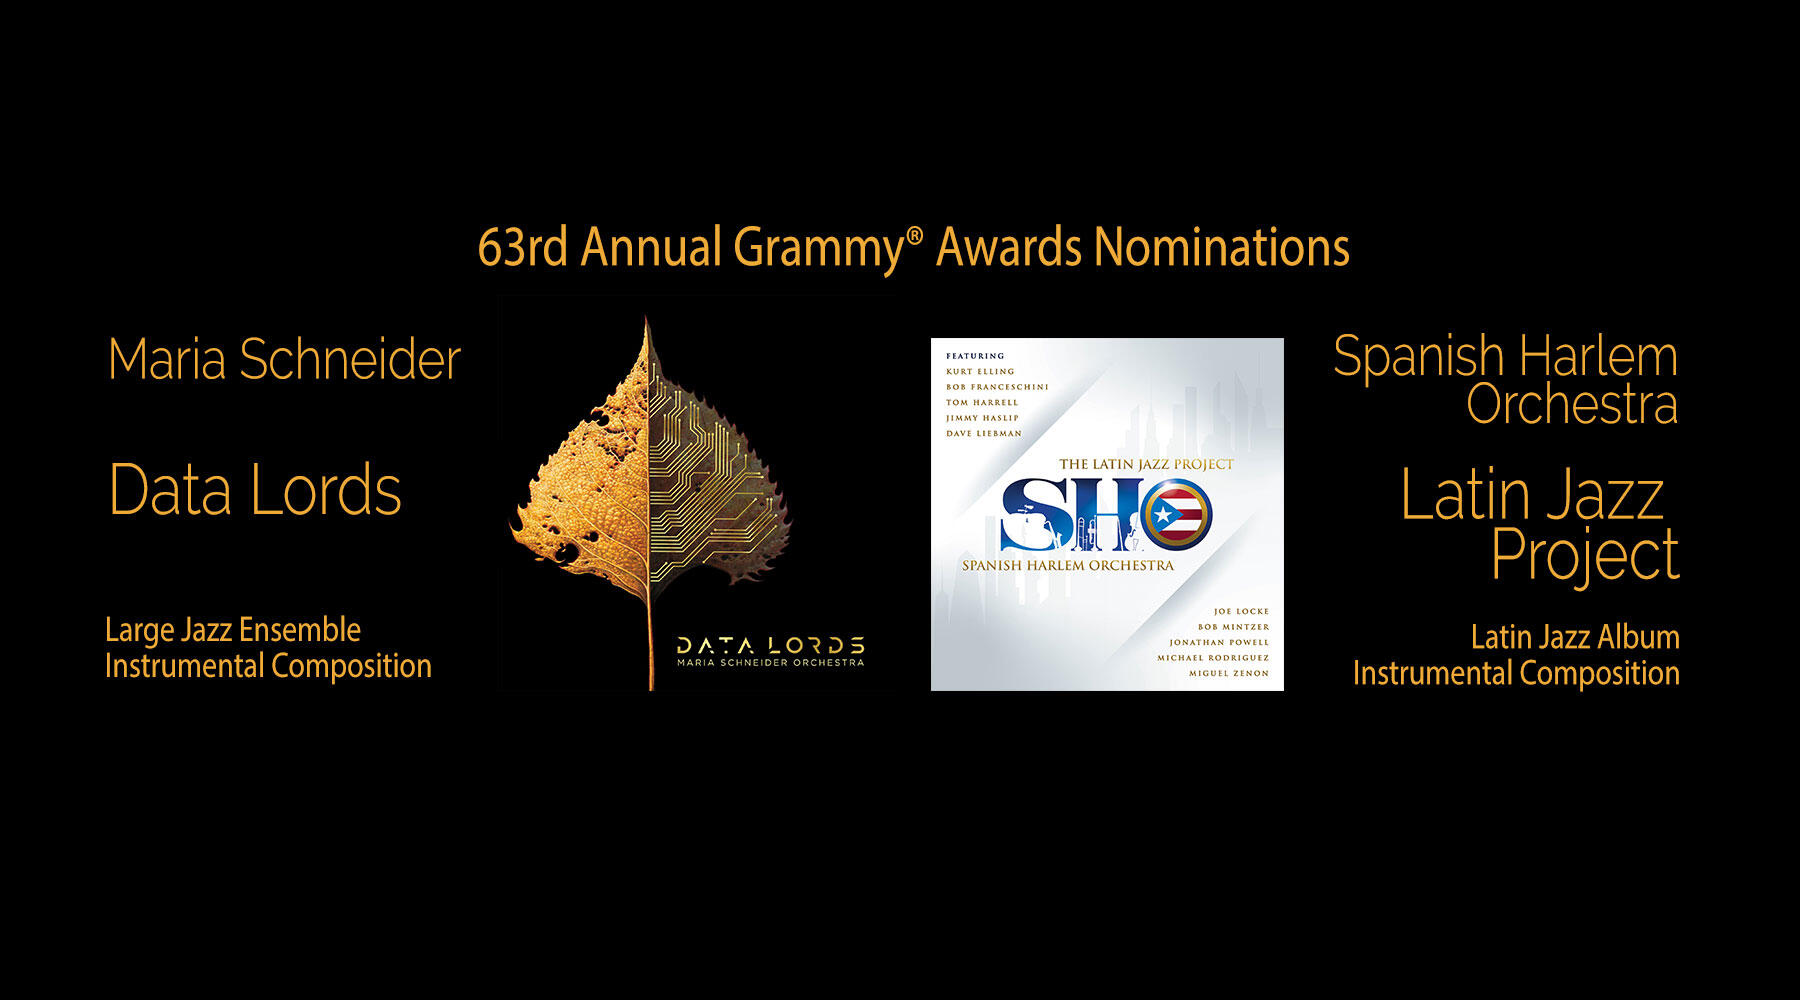 63rd Grammy® Awards on ArtistShare